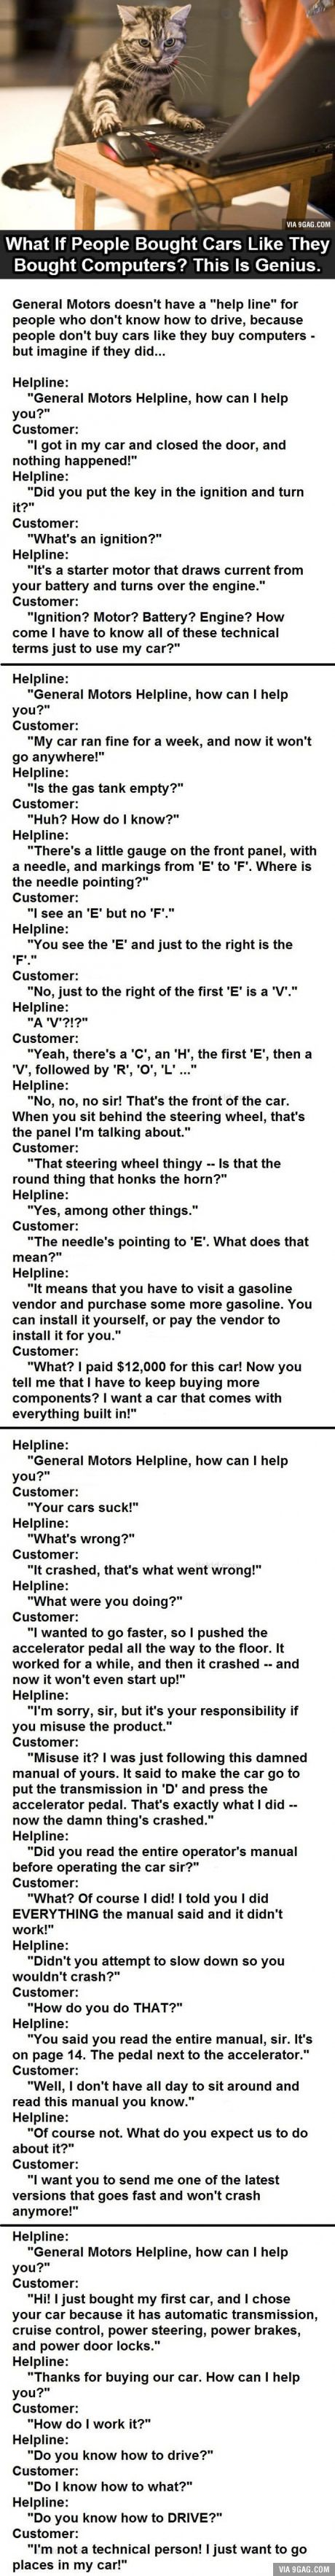 What if people bought cars like they buy computers? (Classic old tech humor) - Imgur